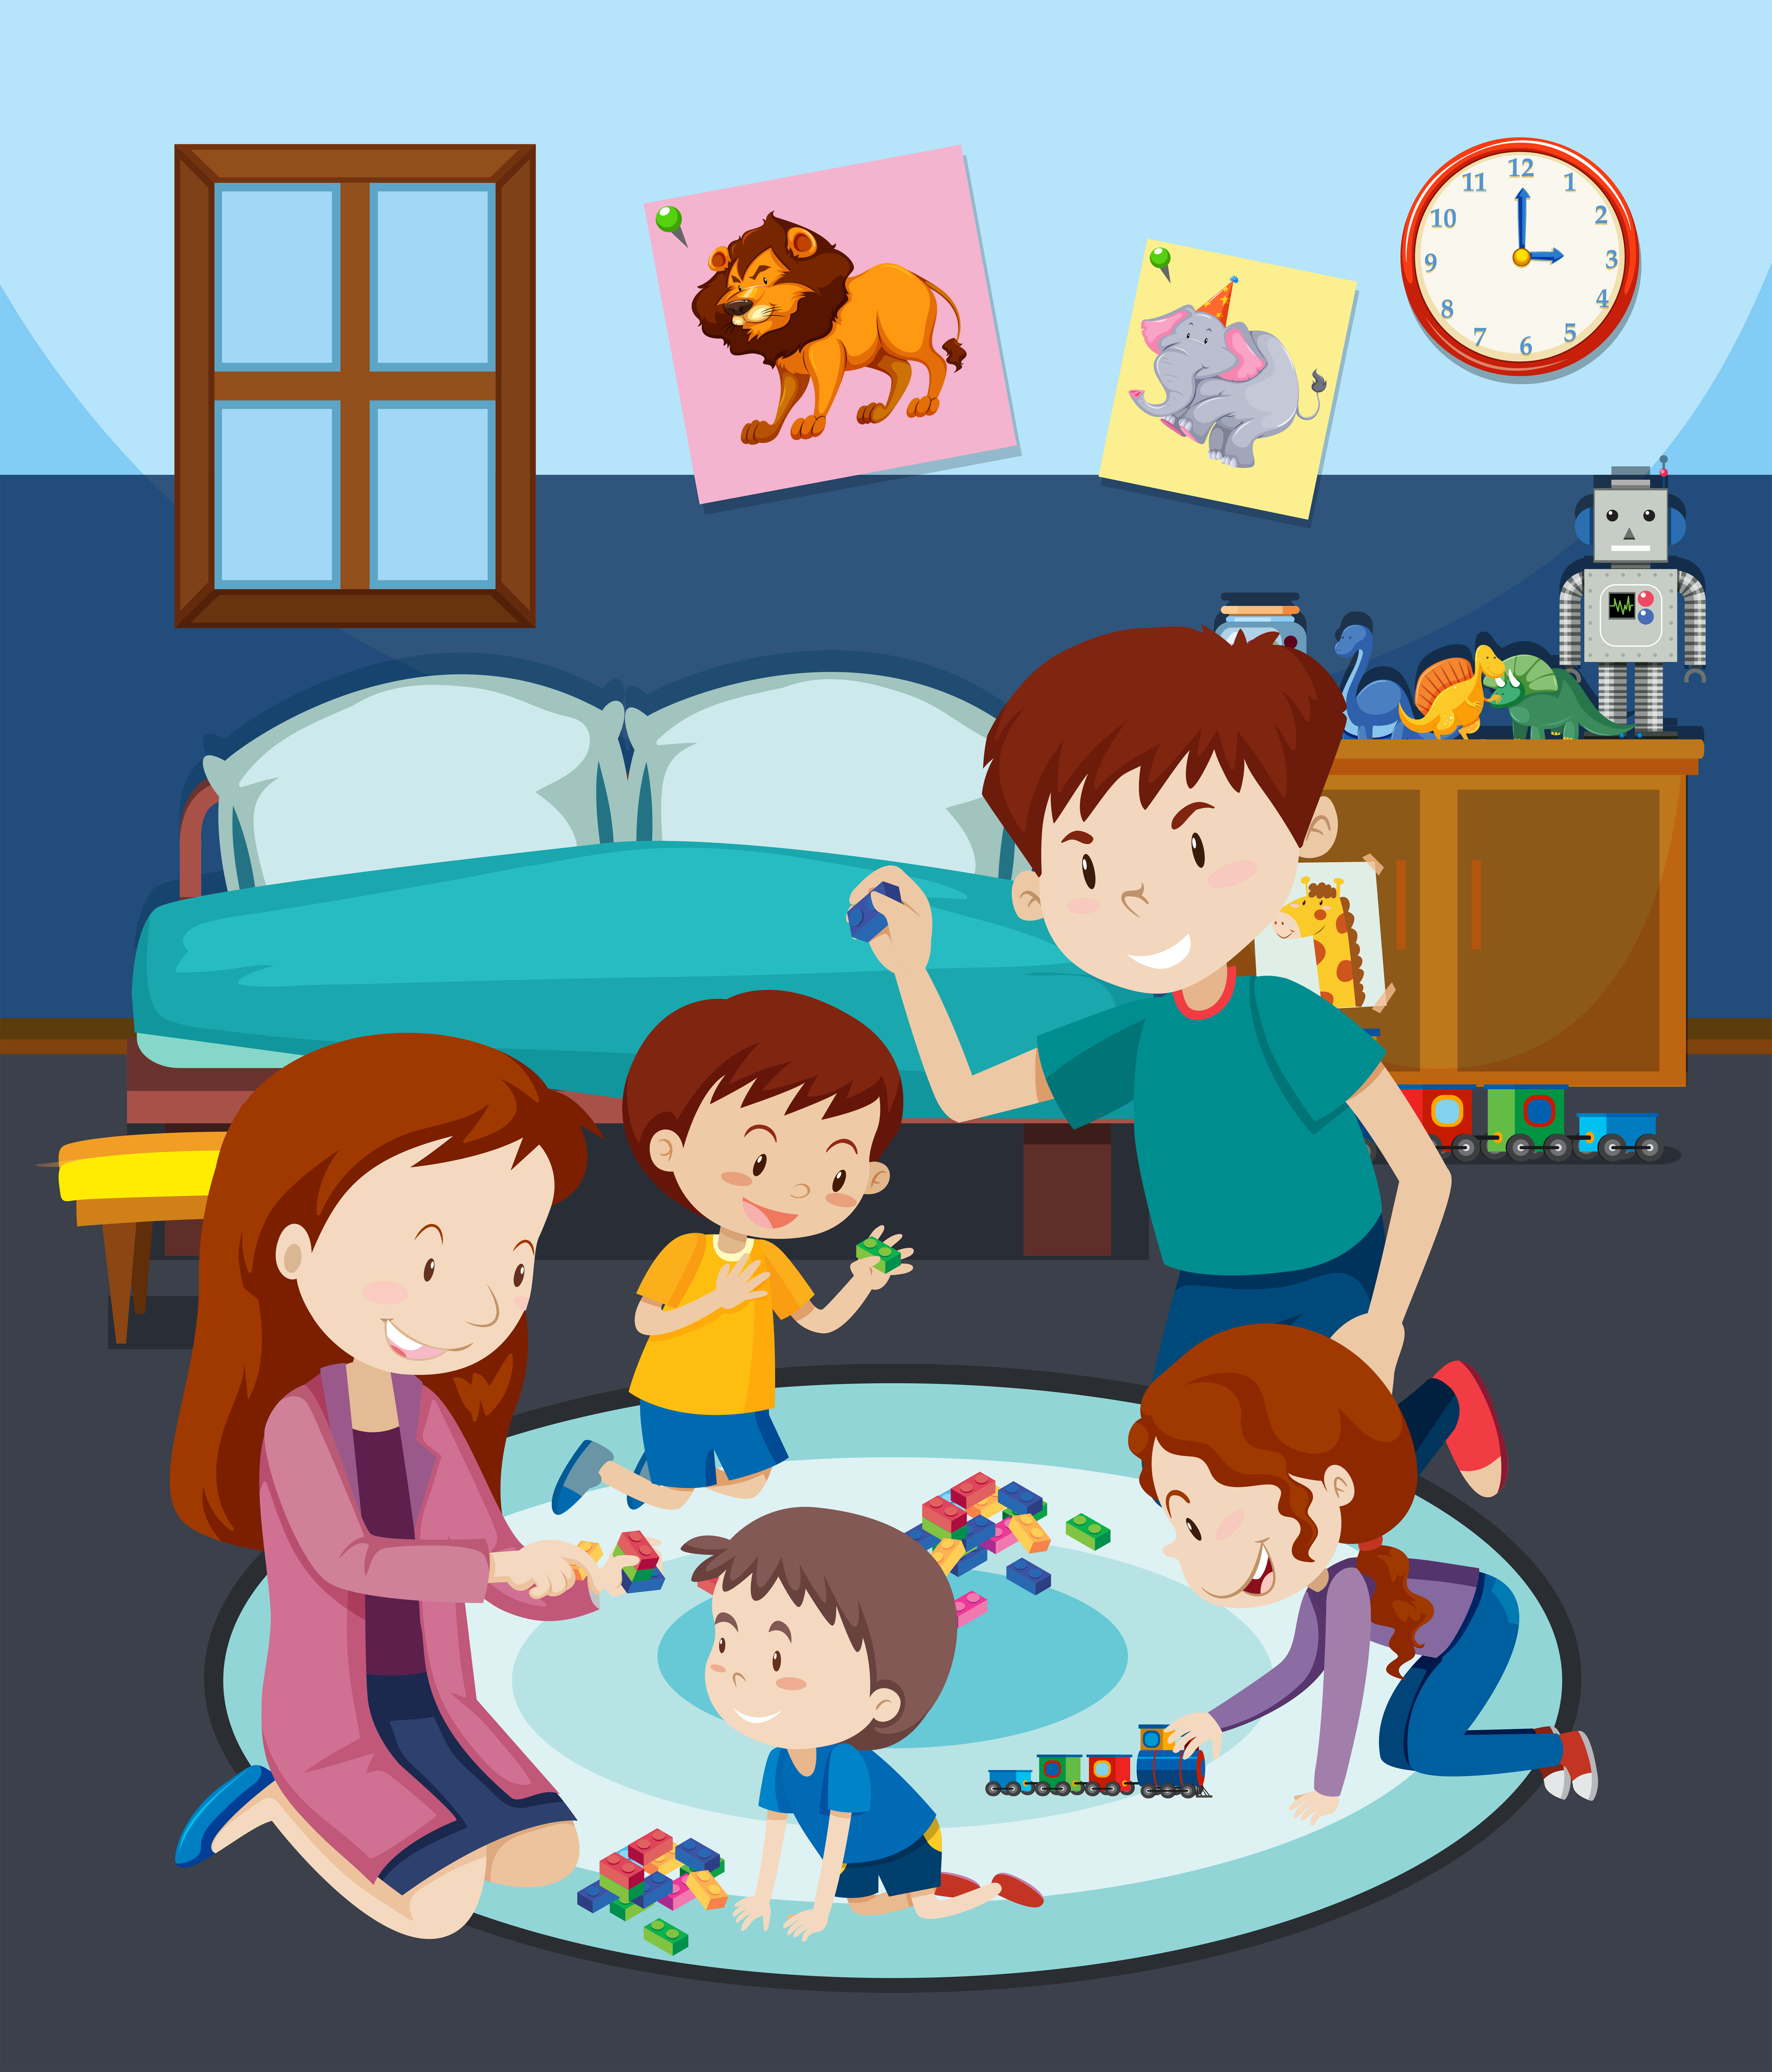 A Family Playing Toy With Children